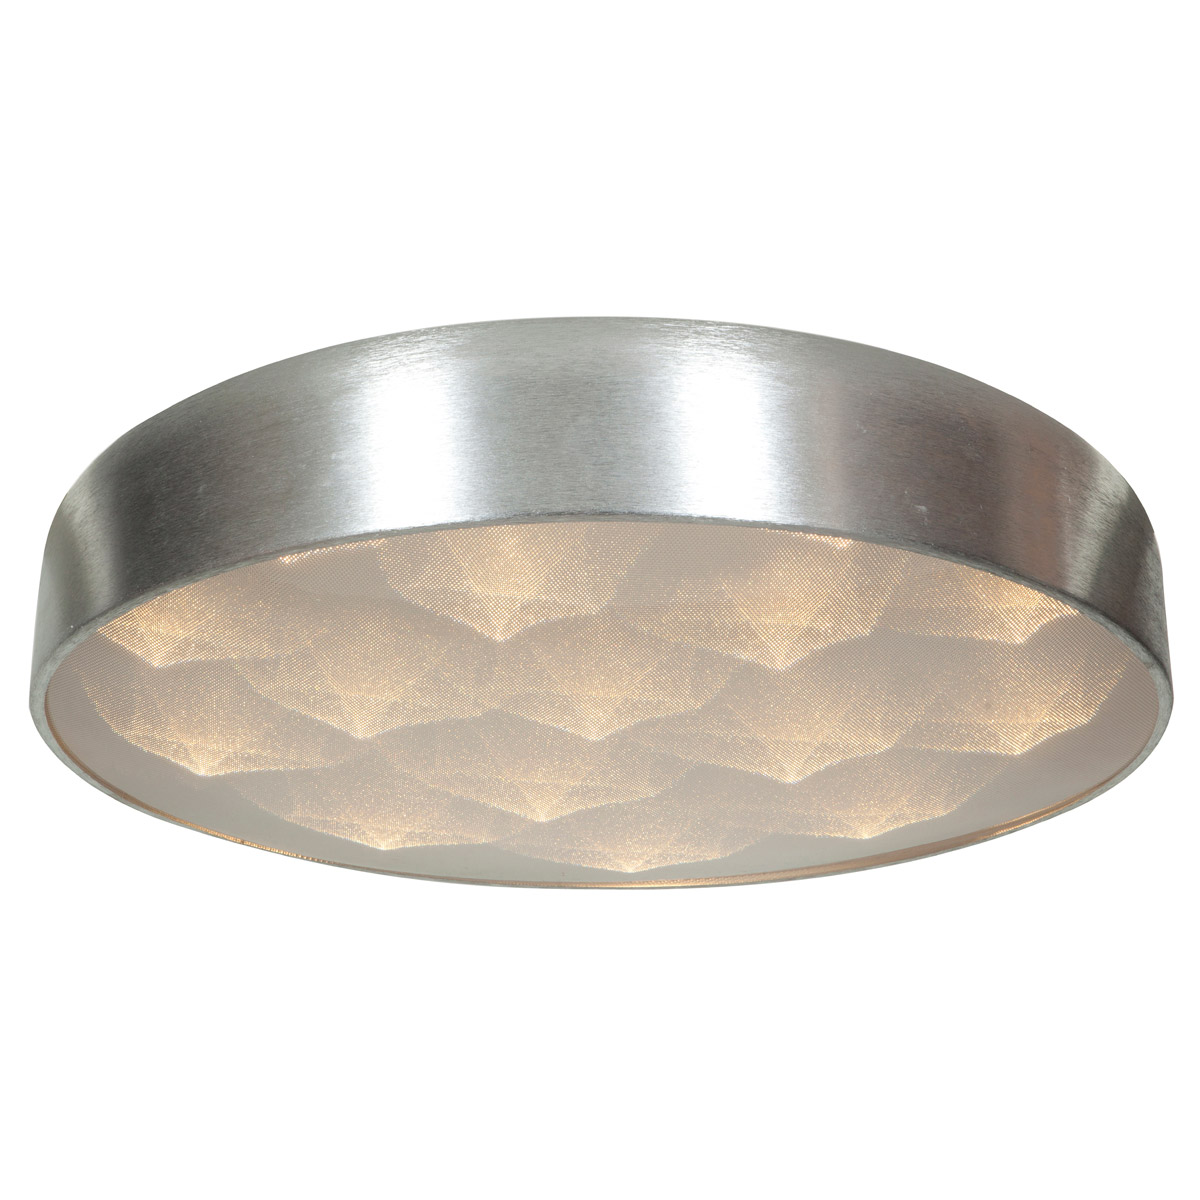 Access Lighting 70082LEDD-BSL ACR Meteor LED 23 inch Brushed Silver Flush Mount Ceiling Light by Access Lighting